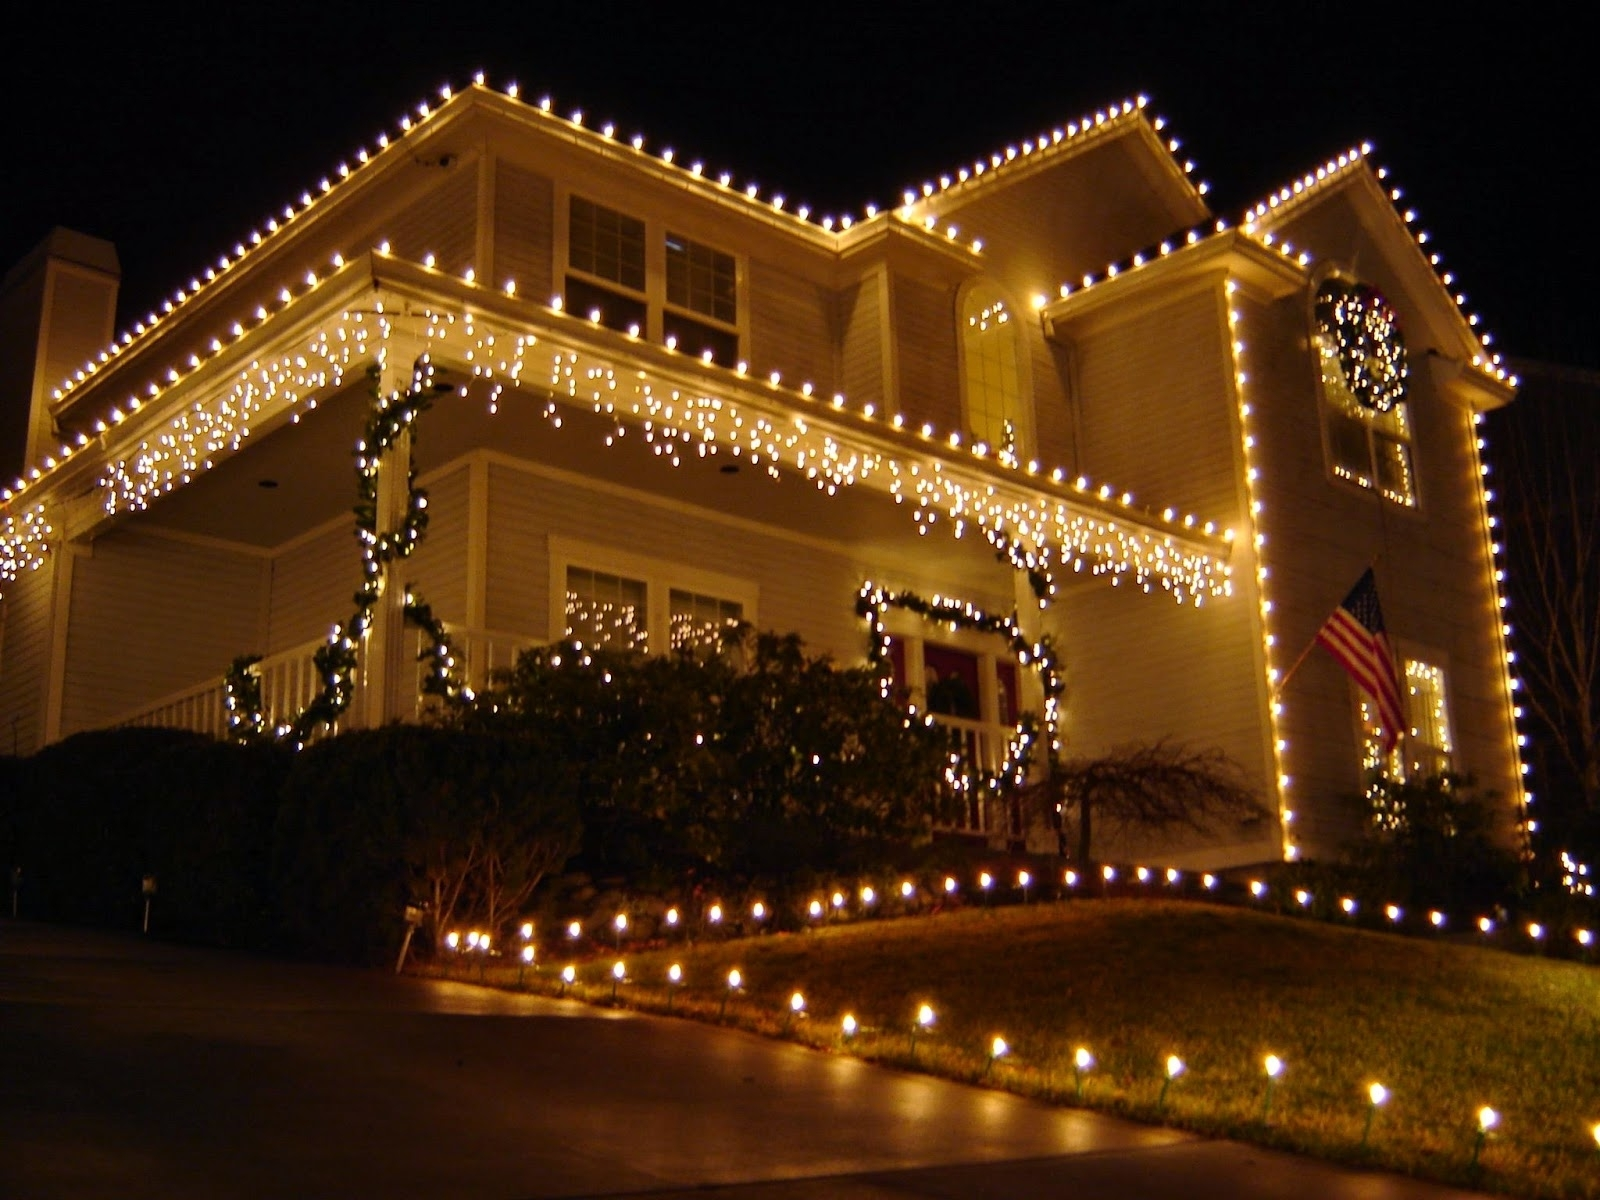 Lighted Roof Line And Path Combined White Garland Lights On The Wall With Recent Outdoor Wall Xmas Lights (View 10 of 20)